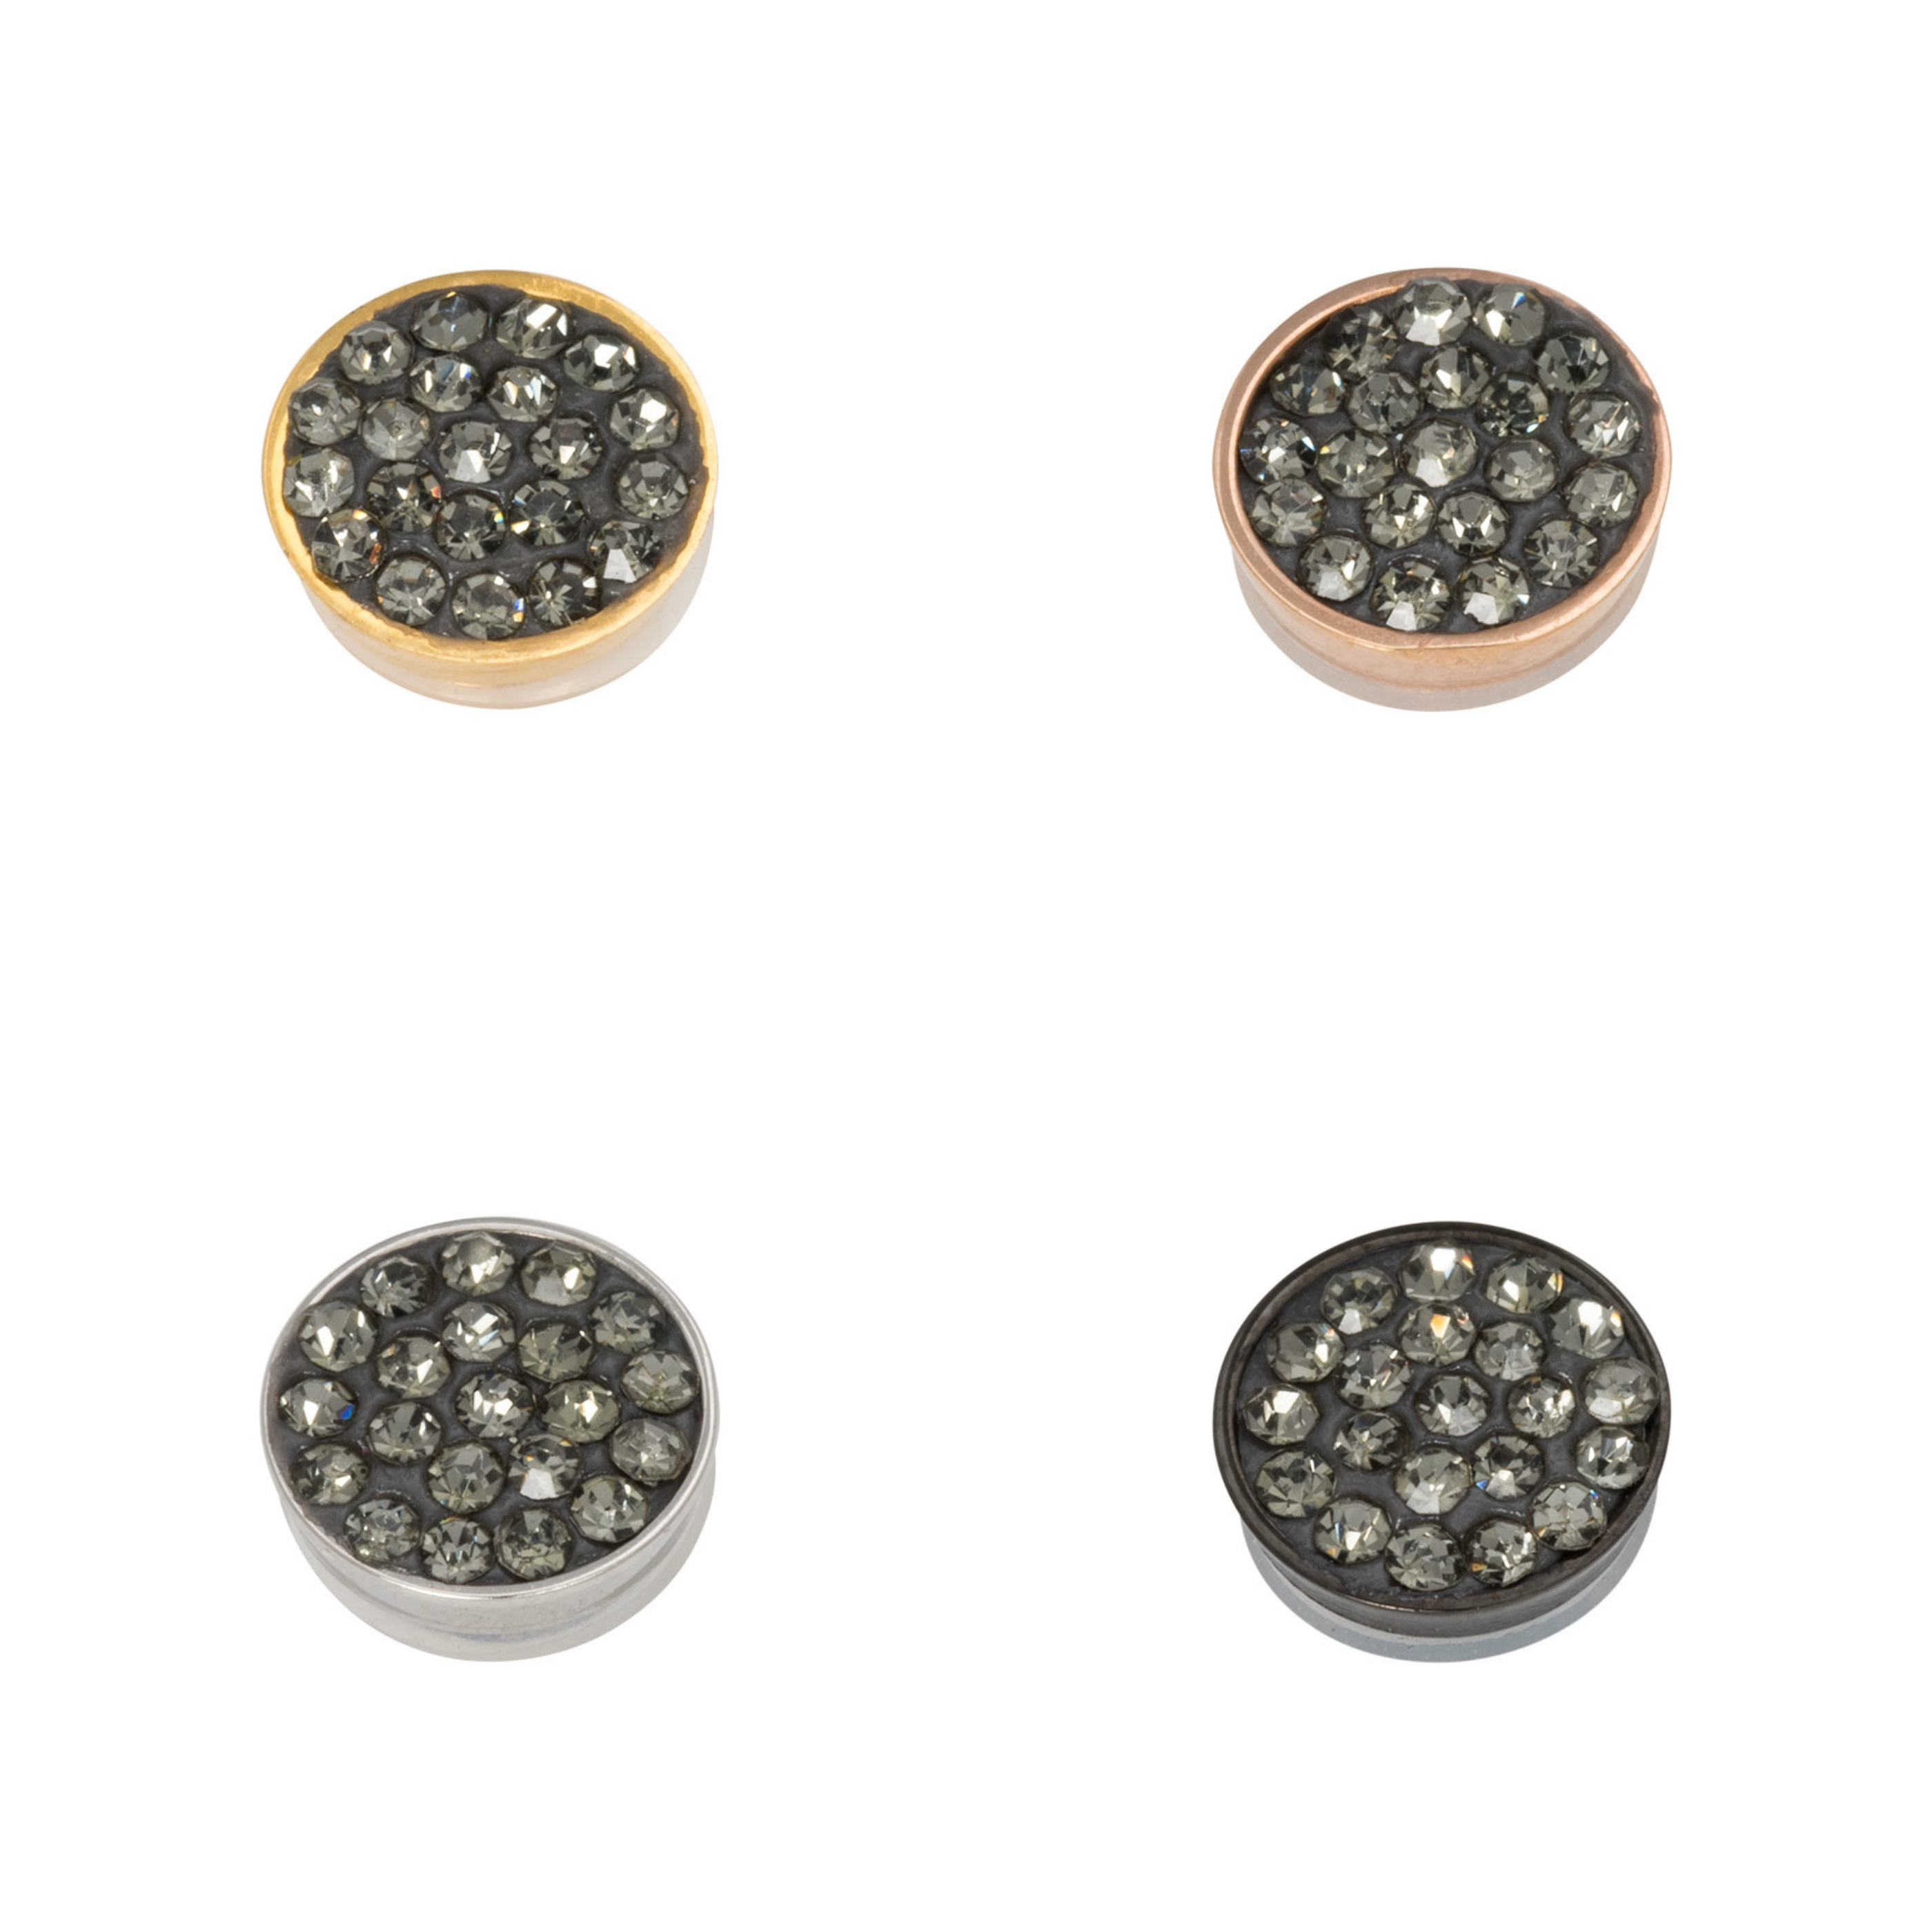 Ixxxi - Top Part - Black Diamond Stones R05024